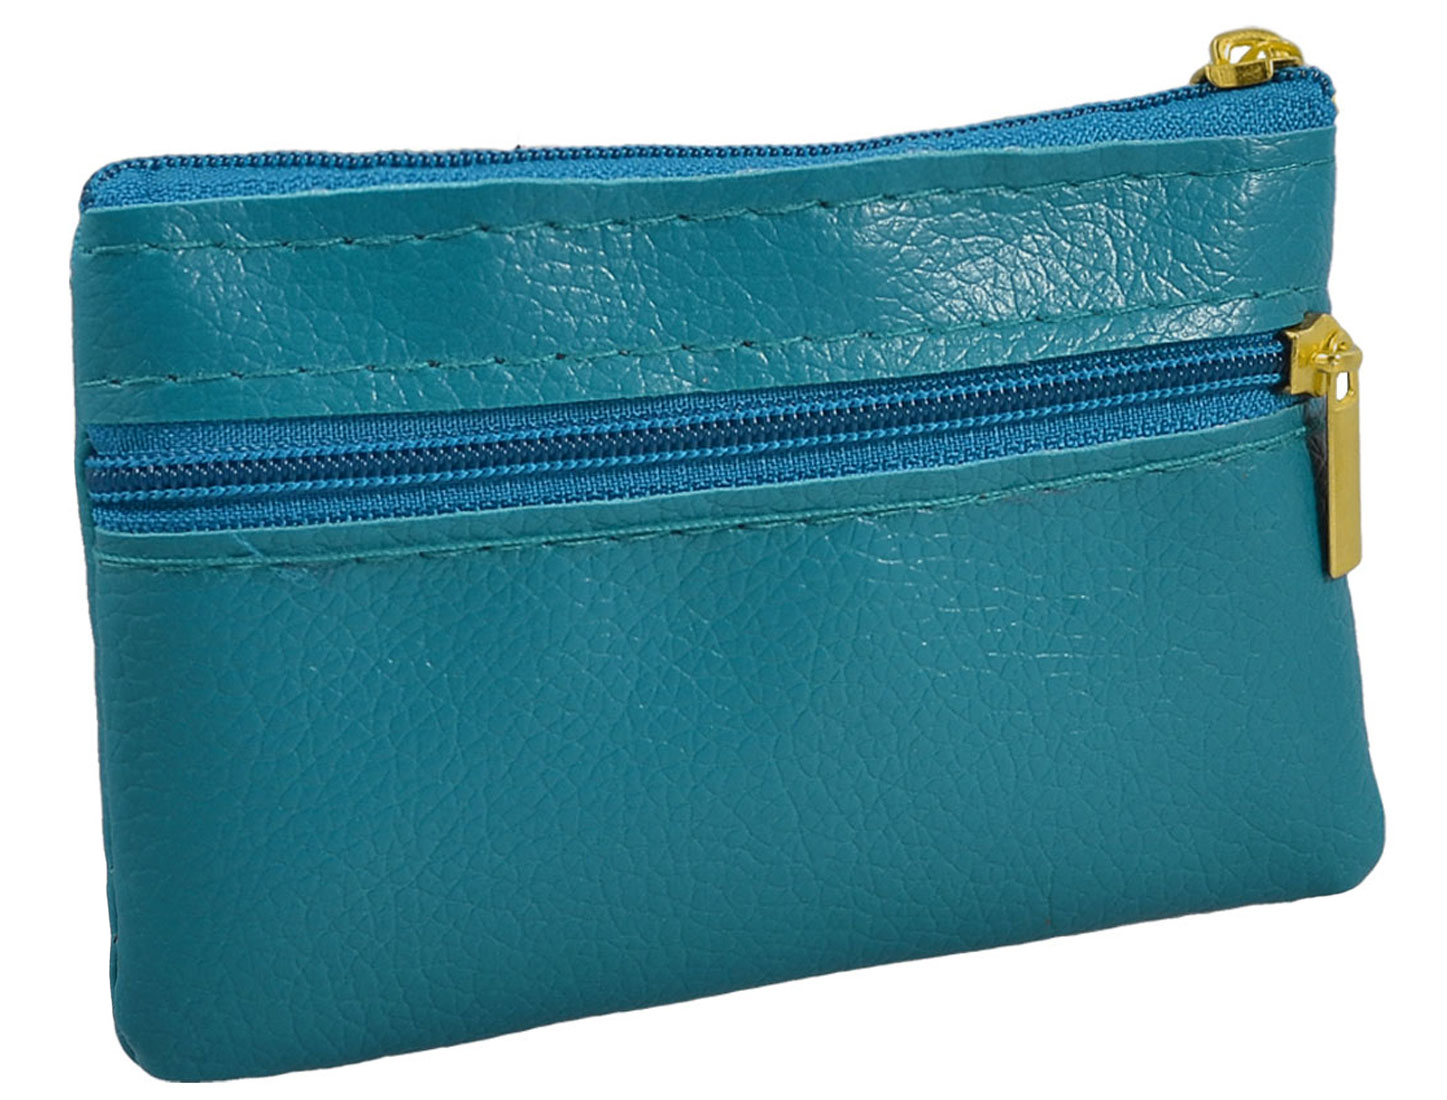 Teal Green Faux Leather Mini Zipper Bag Key Card Coins Purse Change Wallet